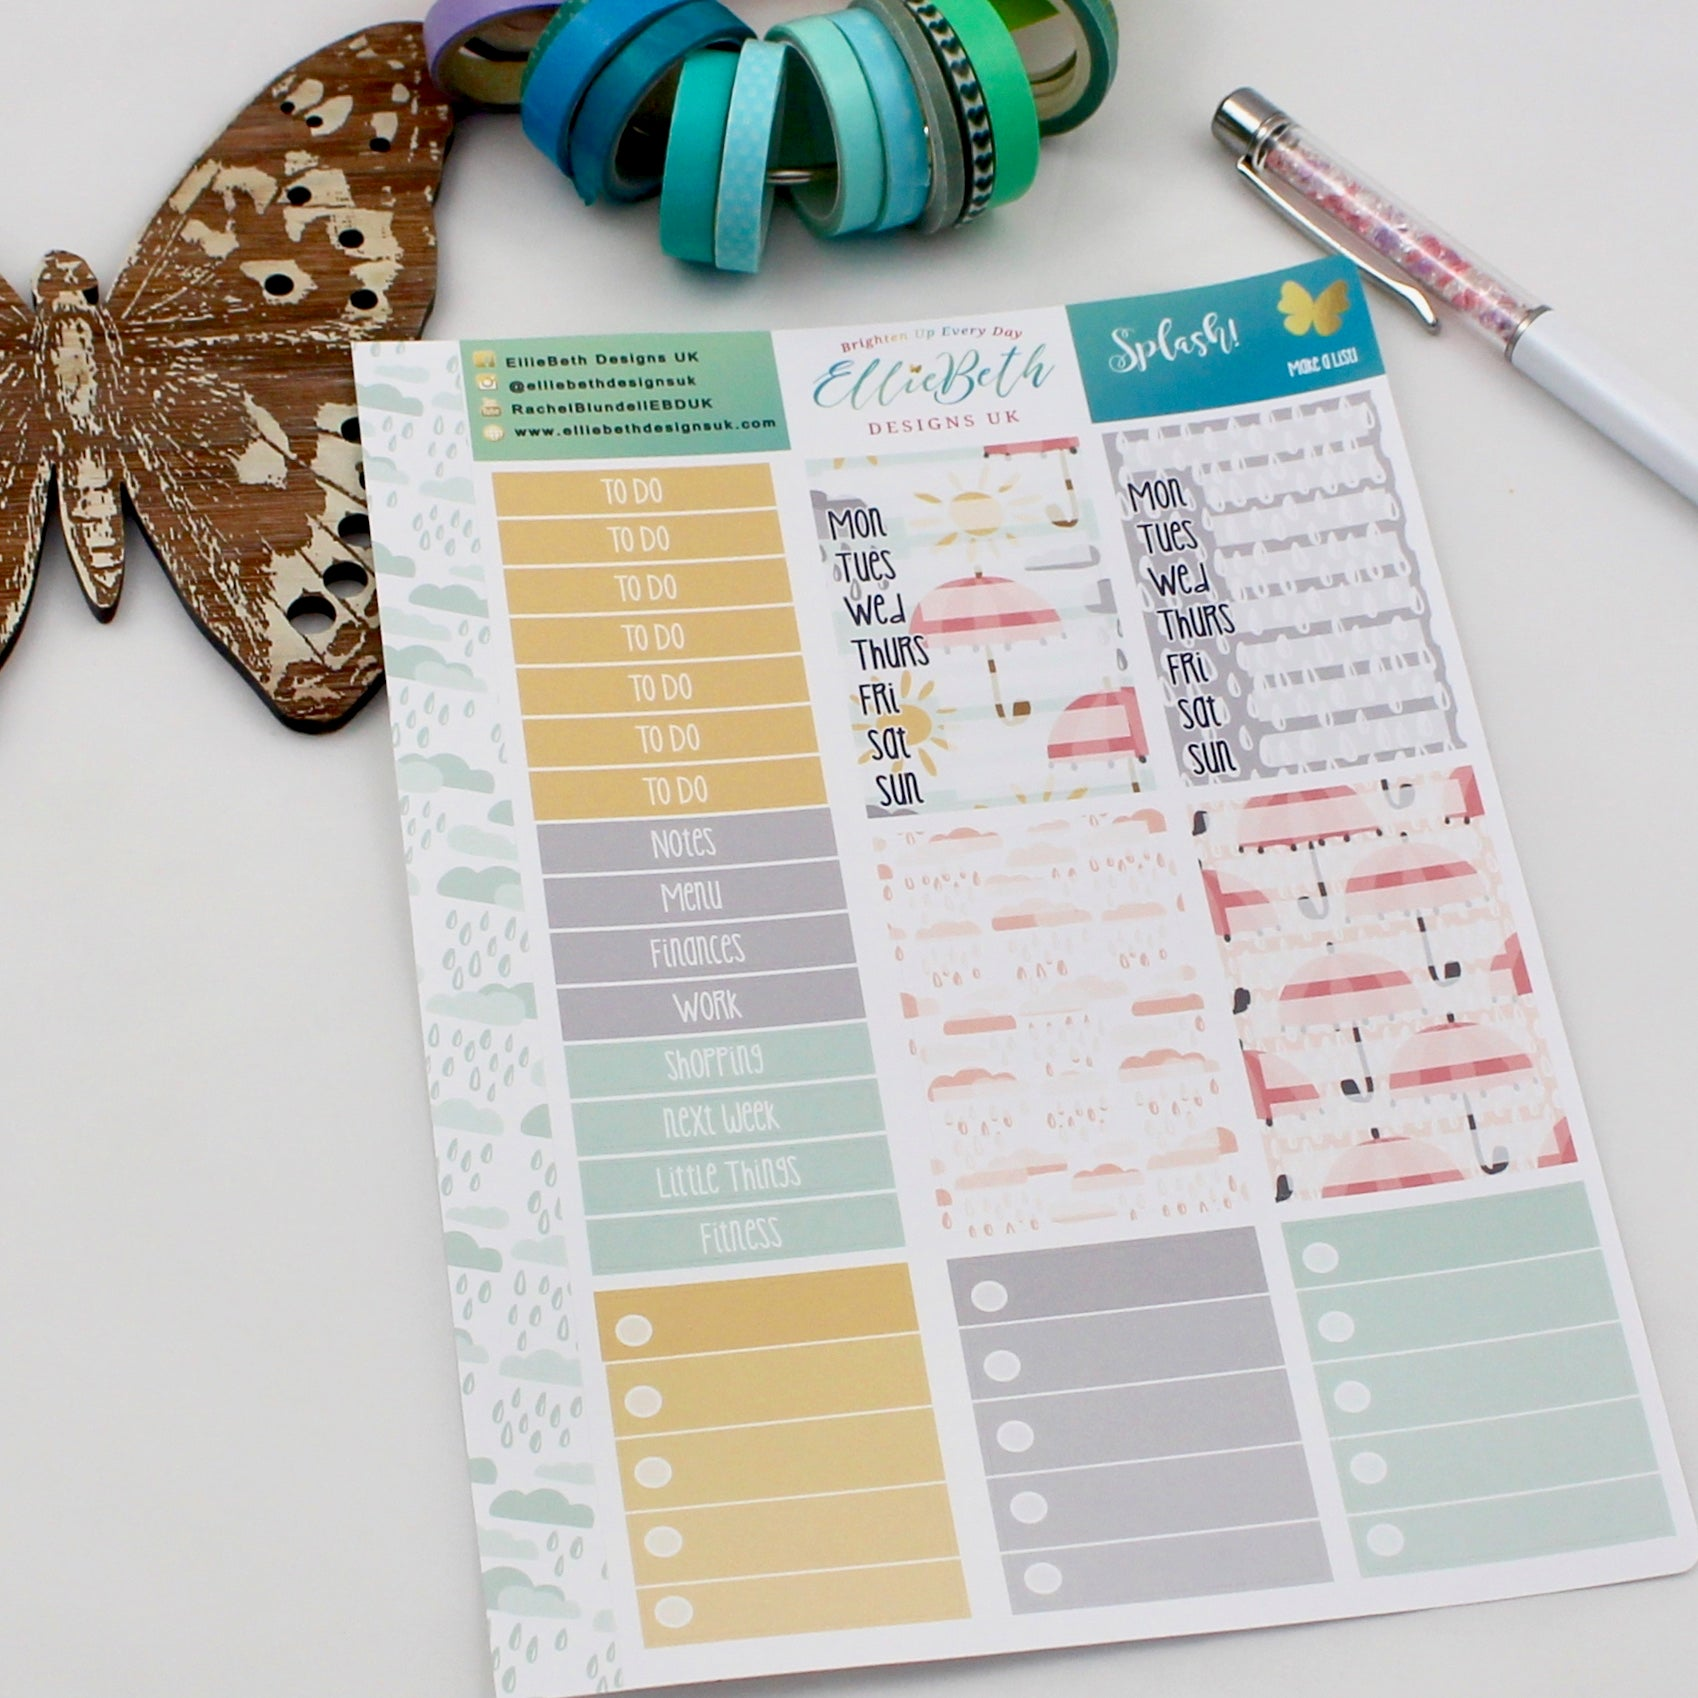 'Splash!' - Make a List Sheet -  A5 binder ready planner stickers - EllieBeth Designs UK